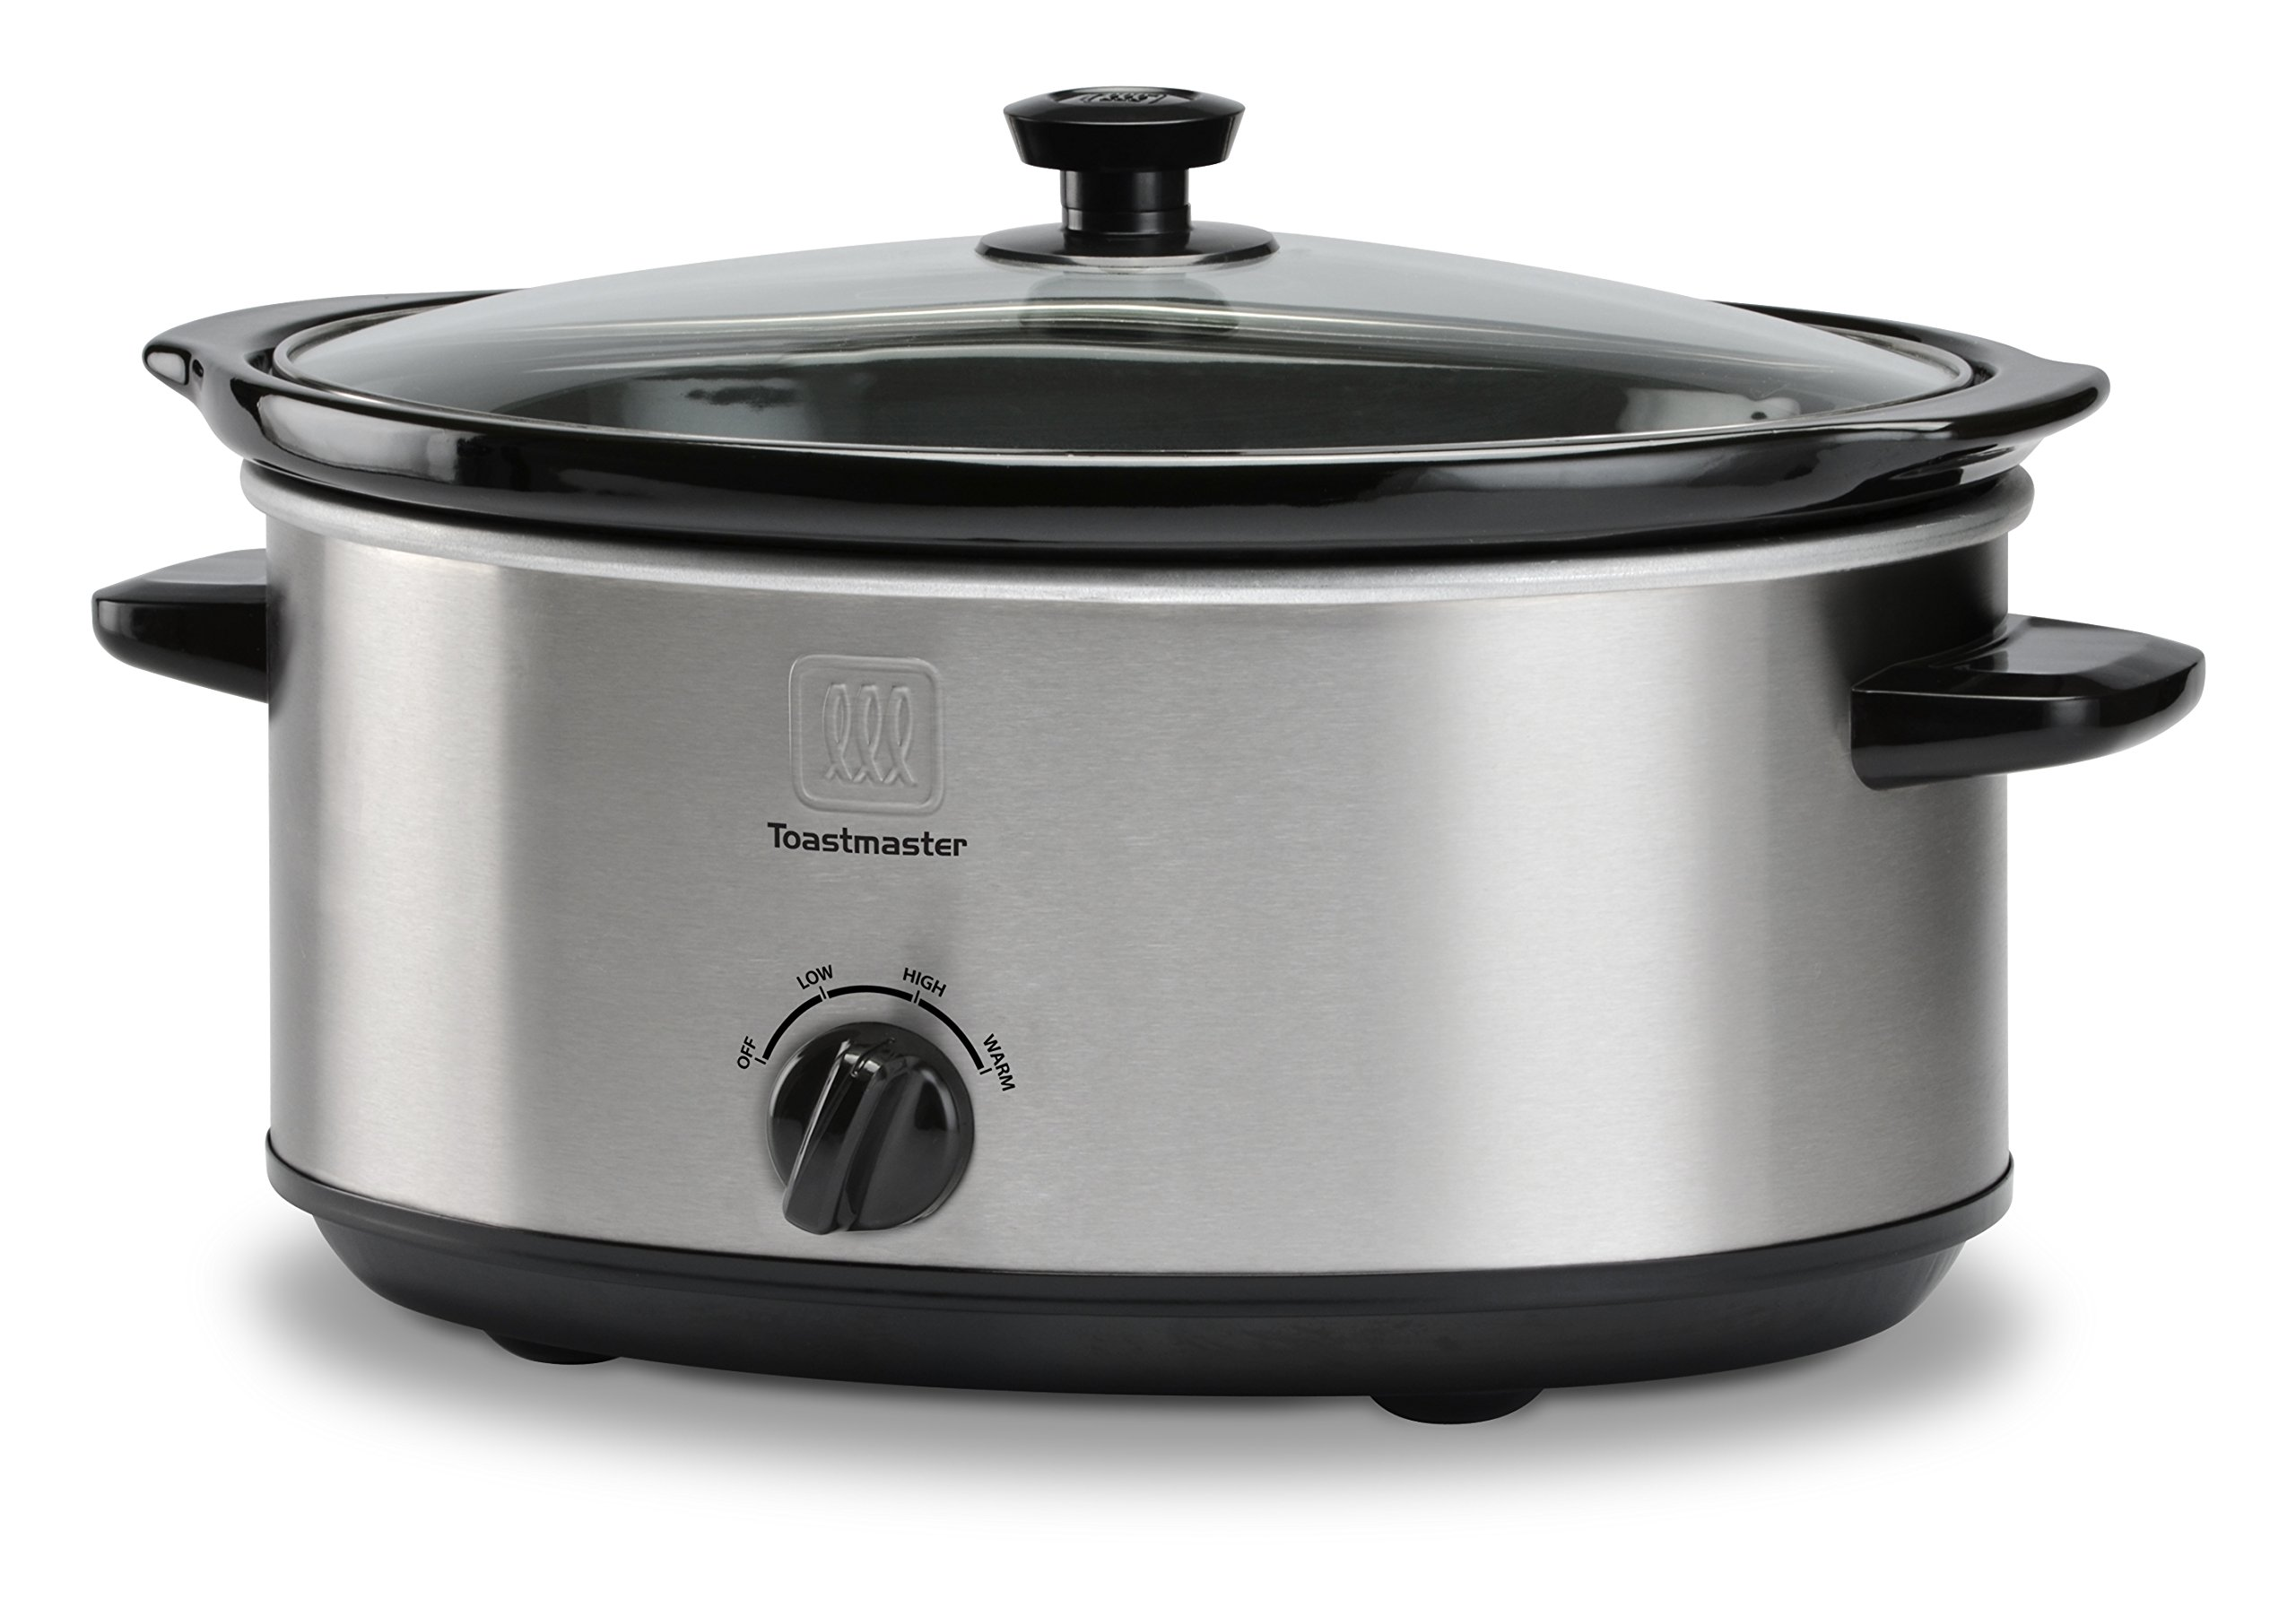 Toastmaster TM-701SC 7-Quart Slow Cooker, Stainless Steel